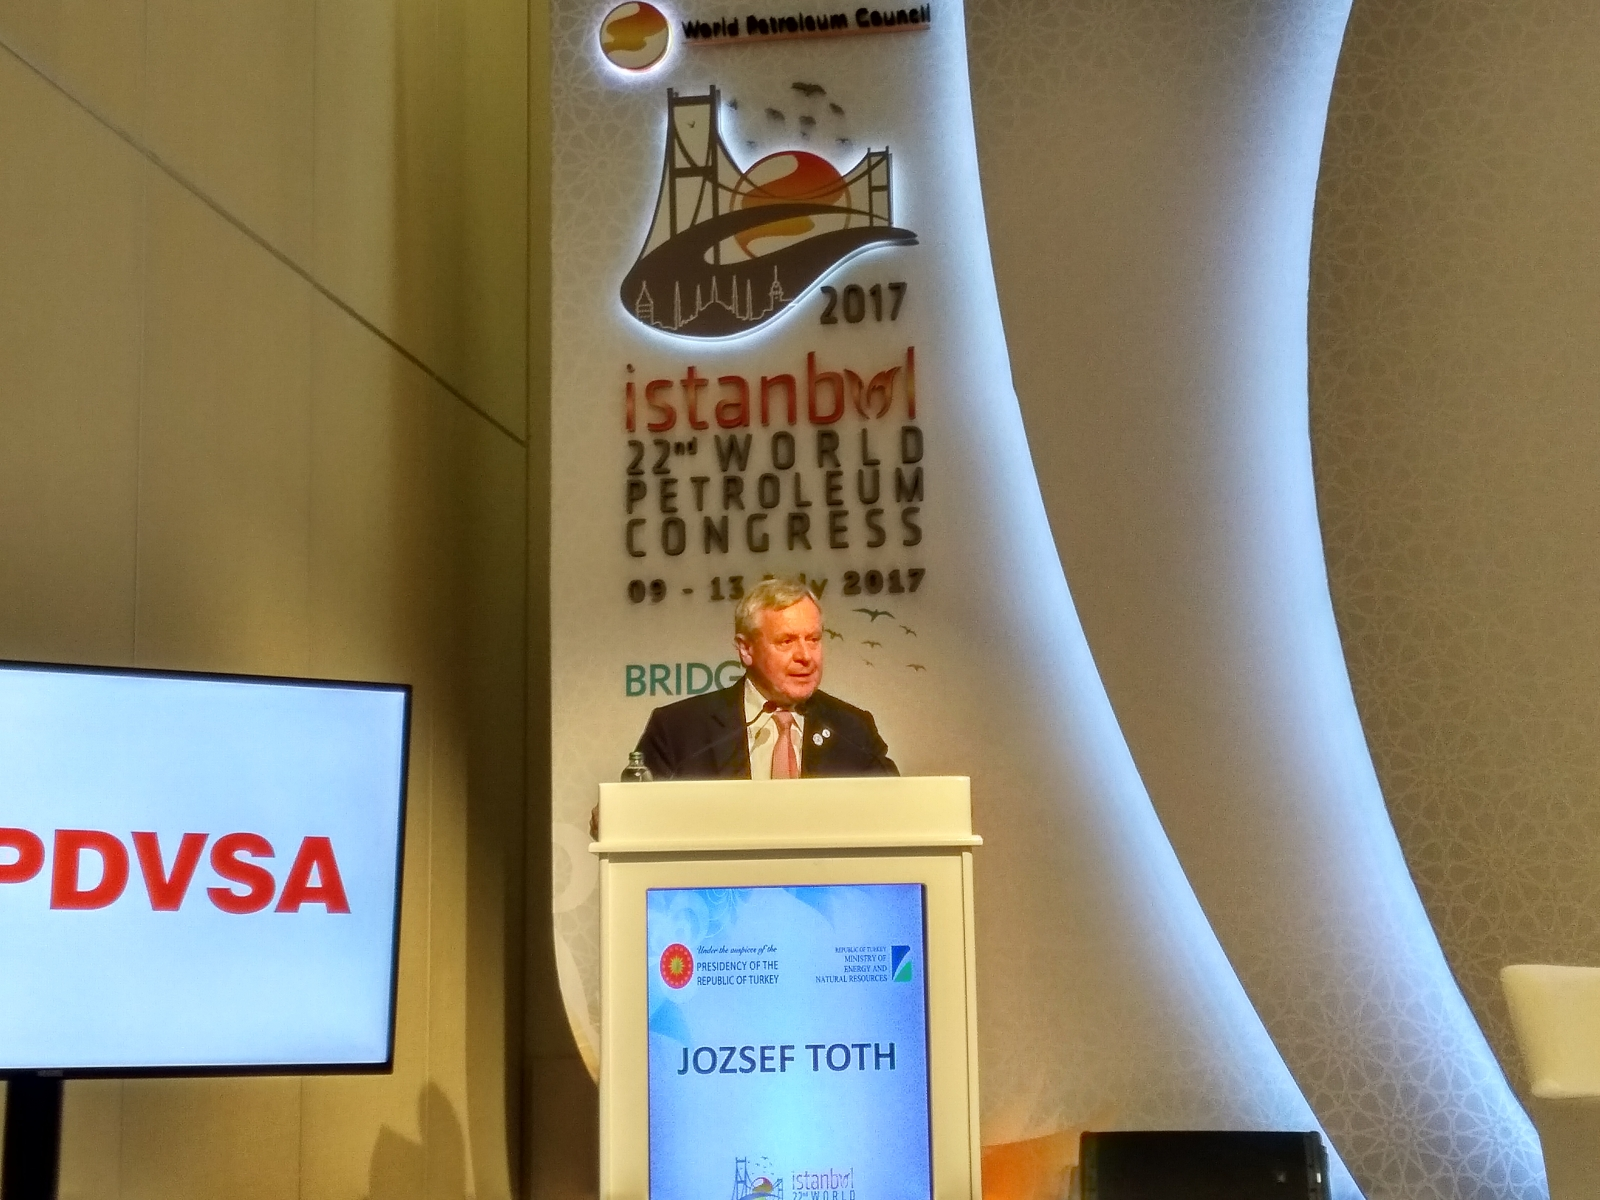 Jozsef Toth, President of World Petroleum Council,